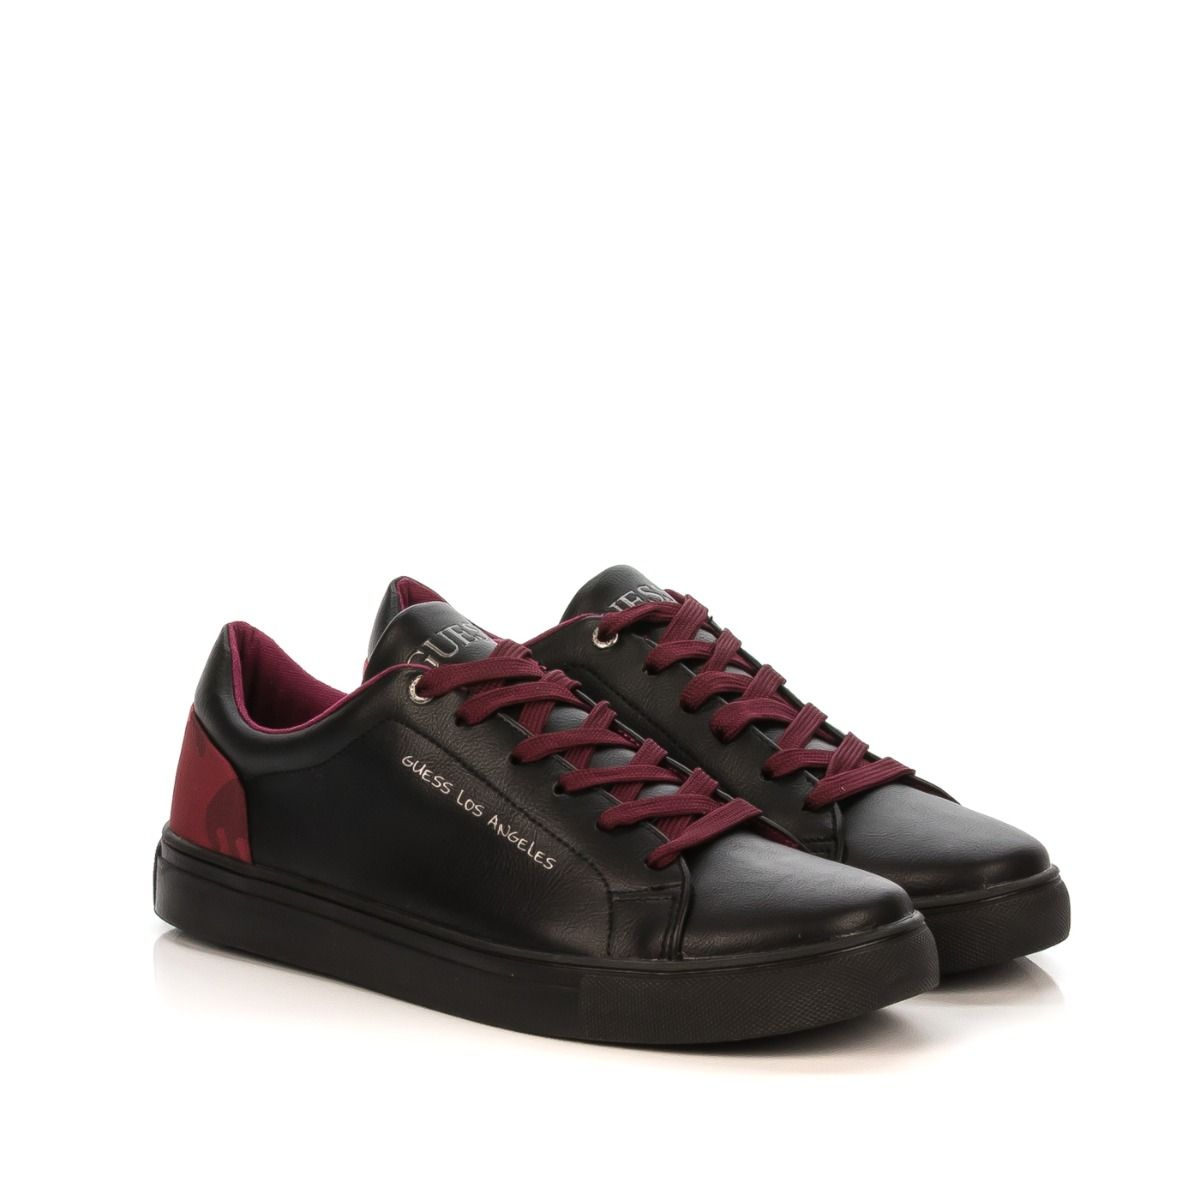 GUESS CRL3|sneakers uomo|camoscio nero|Shoe Center|Shop online